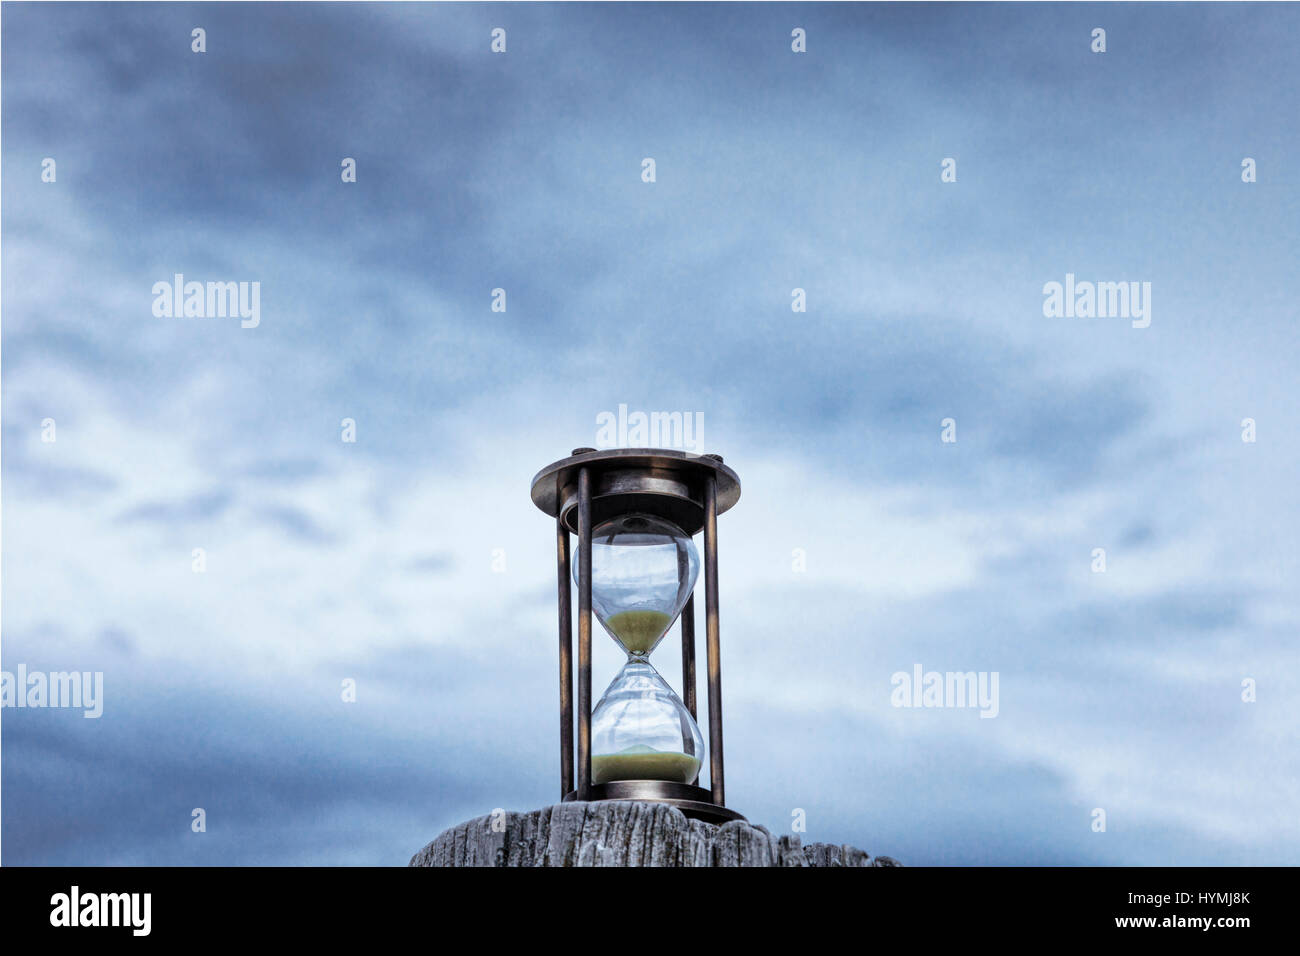 Hourglass or sand timer on a wooden post in front of a moody blue twilight sky. - Stock Image